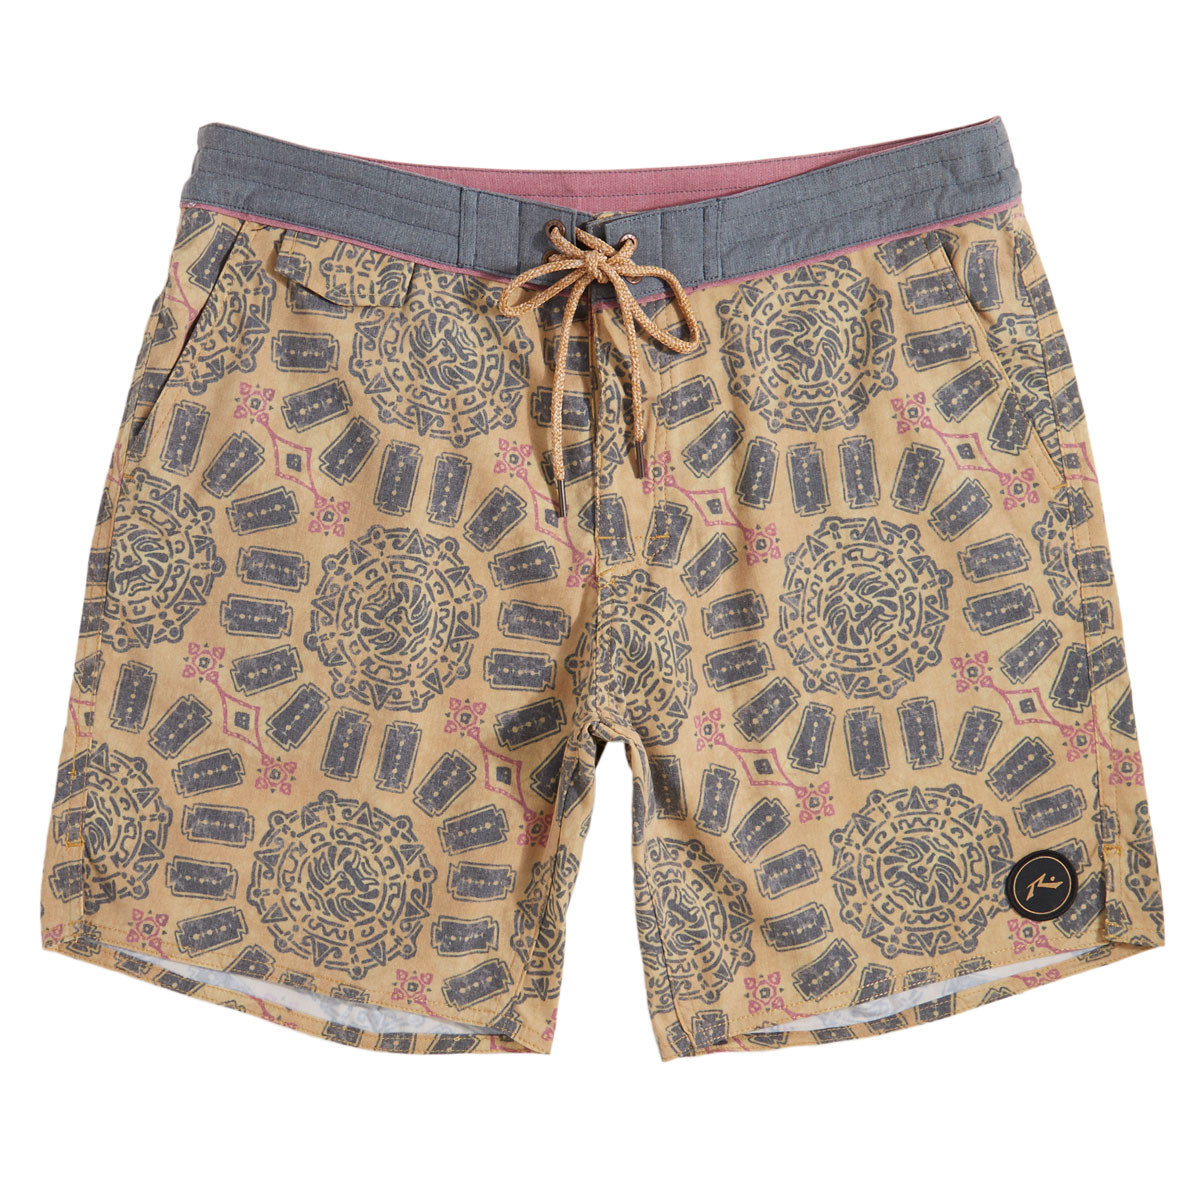 d0f9b69b6f Rusty Batok All Day Boardshorts - Fennel - 30